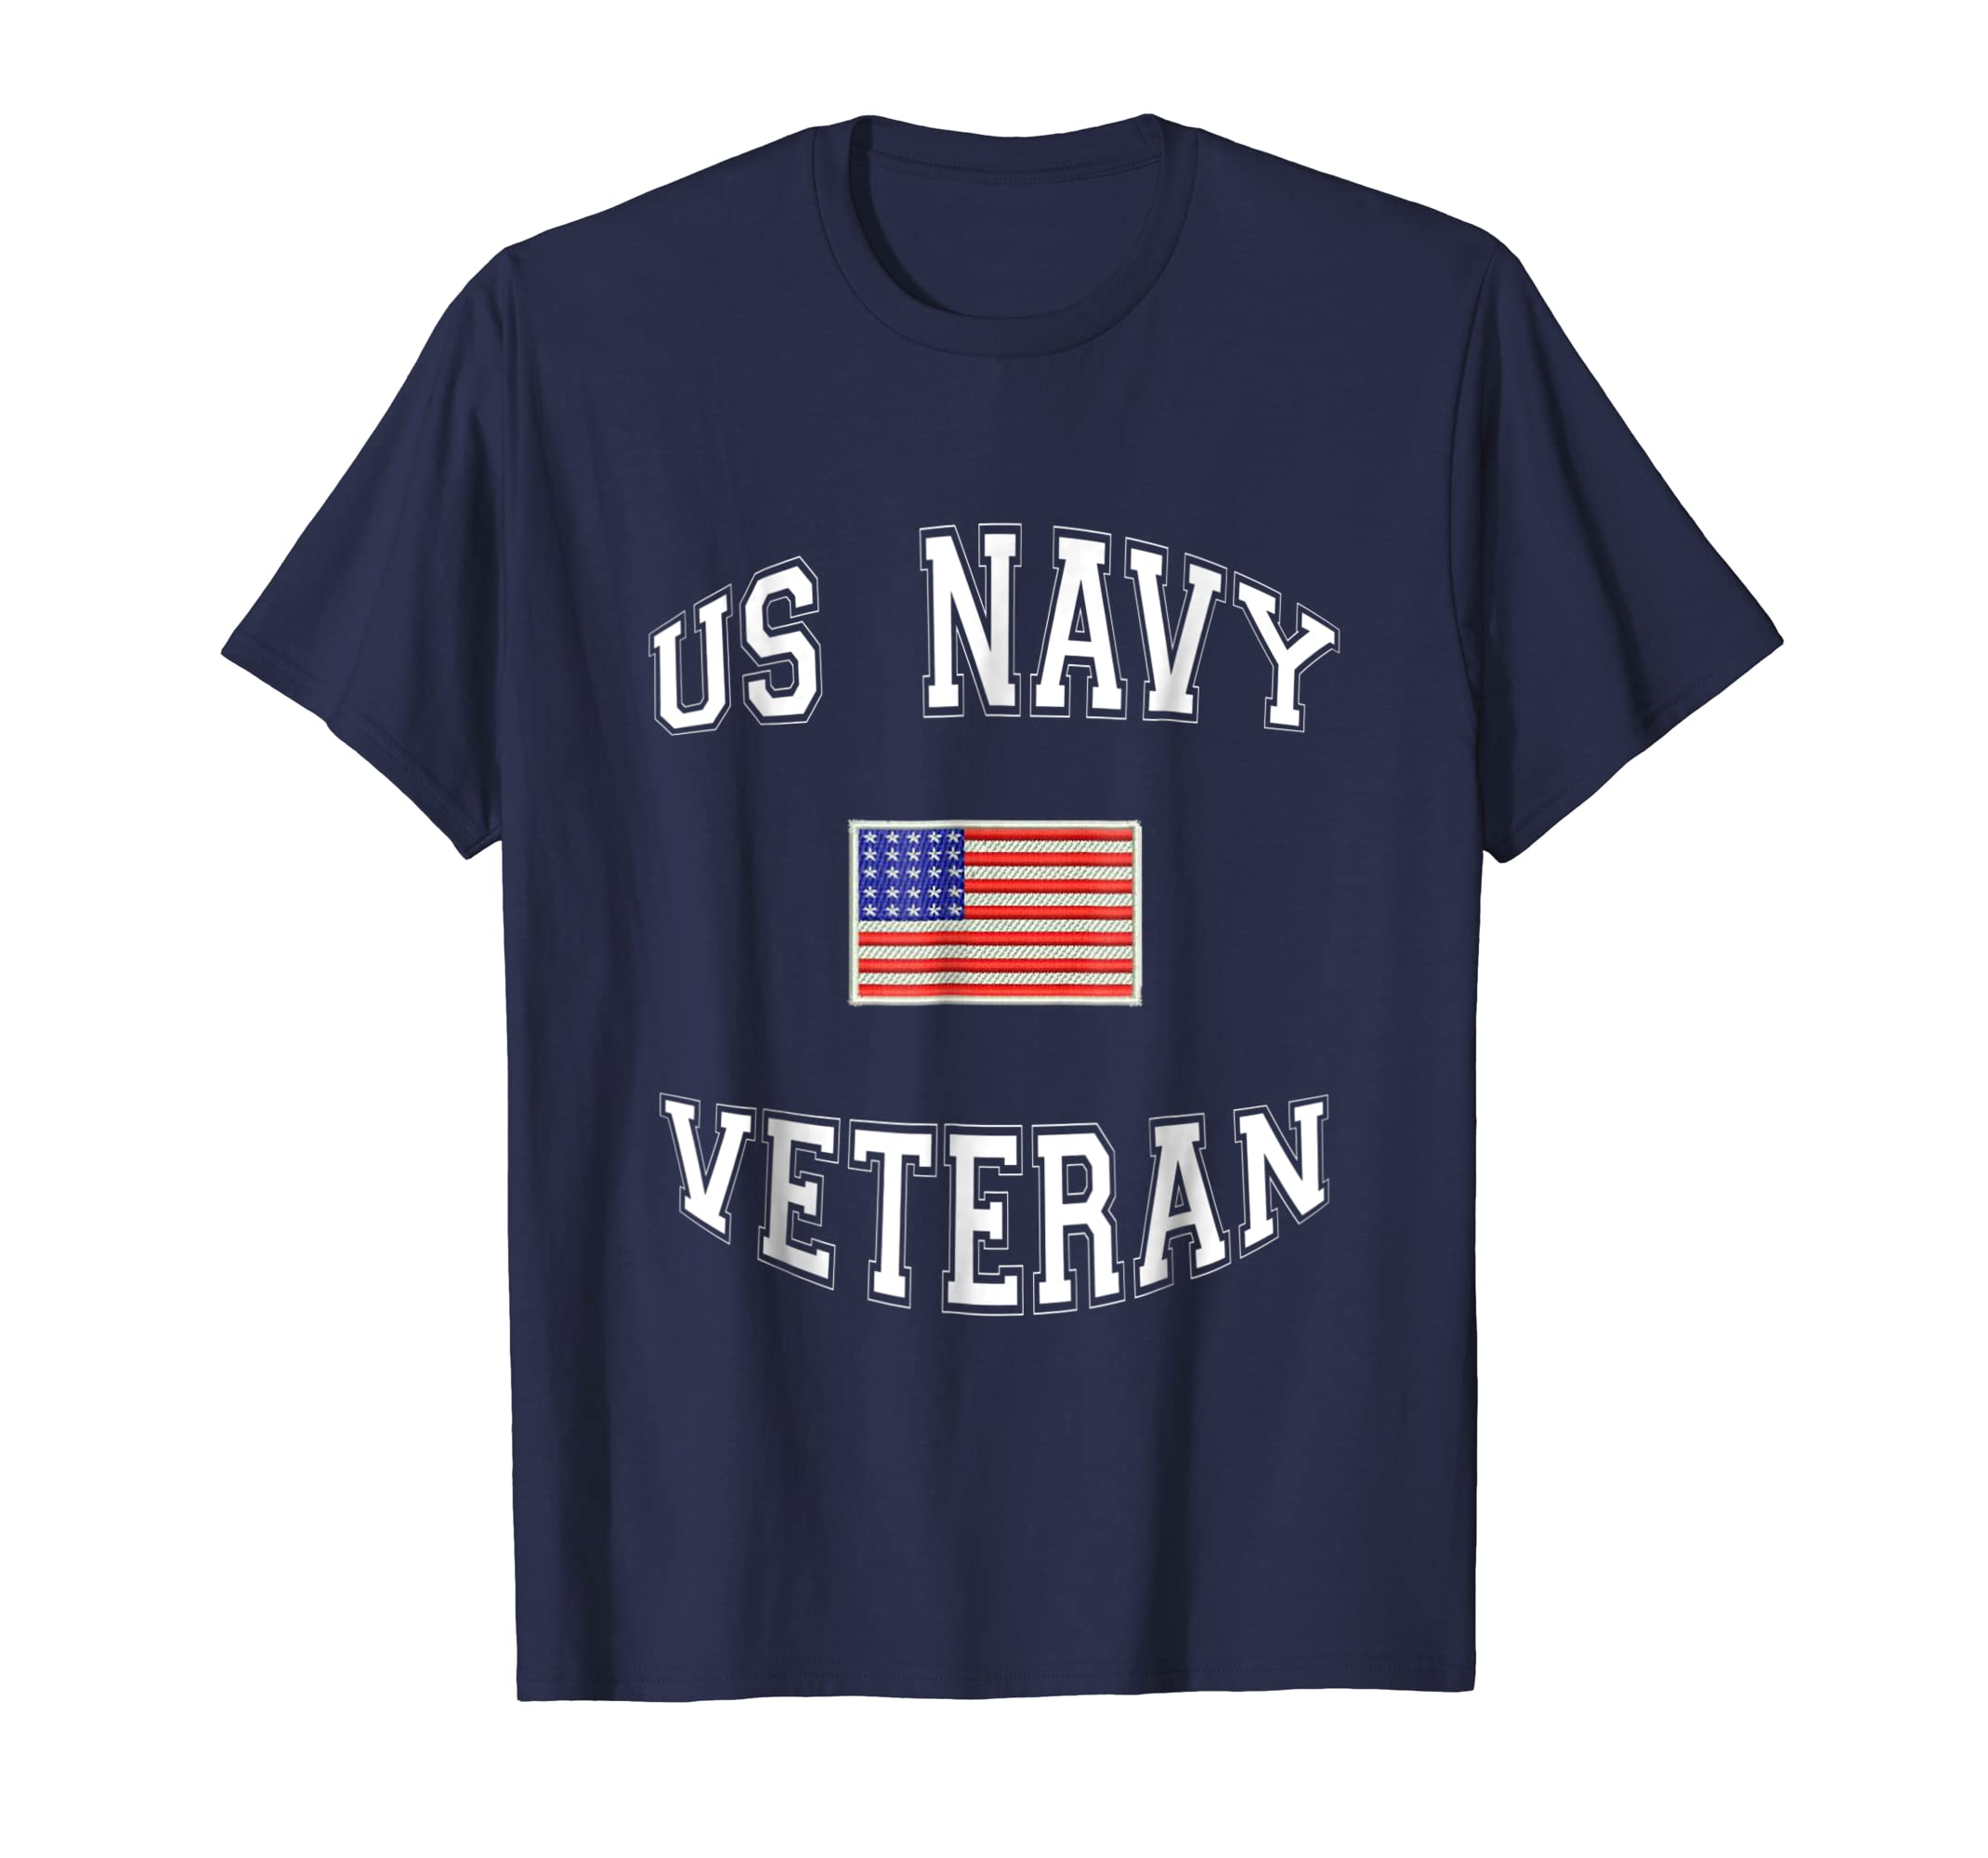 reputable site c26a4 51cac US Navy Veteran, T-shirt Veterans Day, Patriot, Heroes-anz